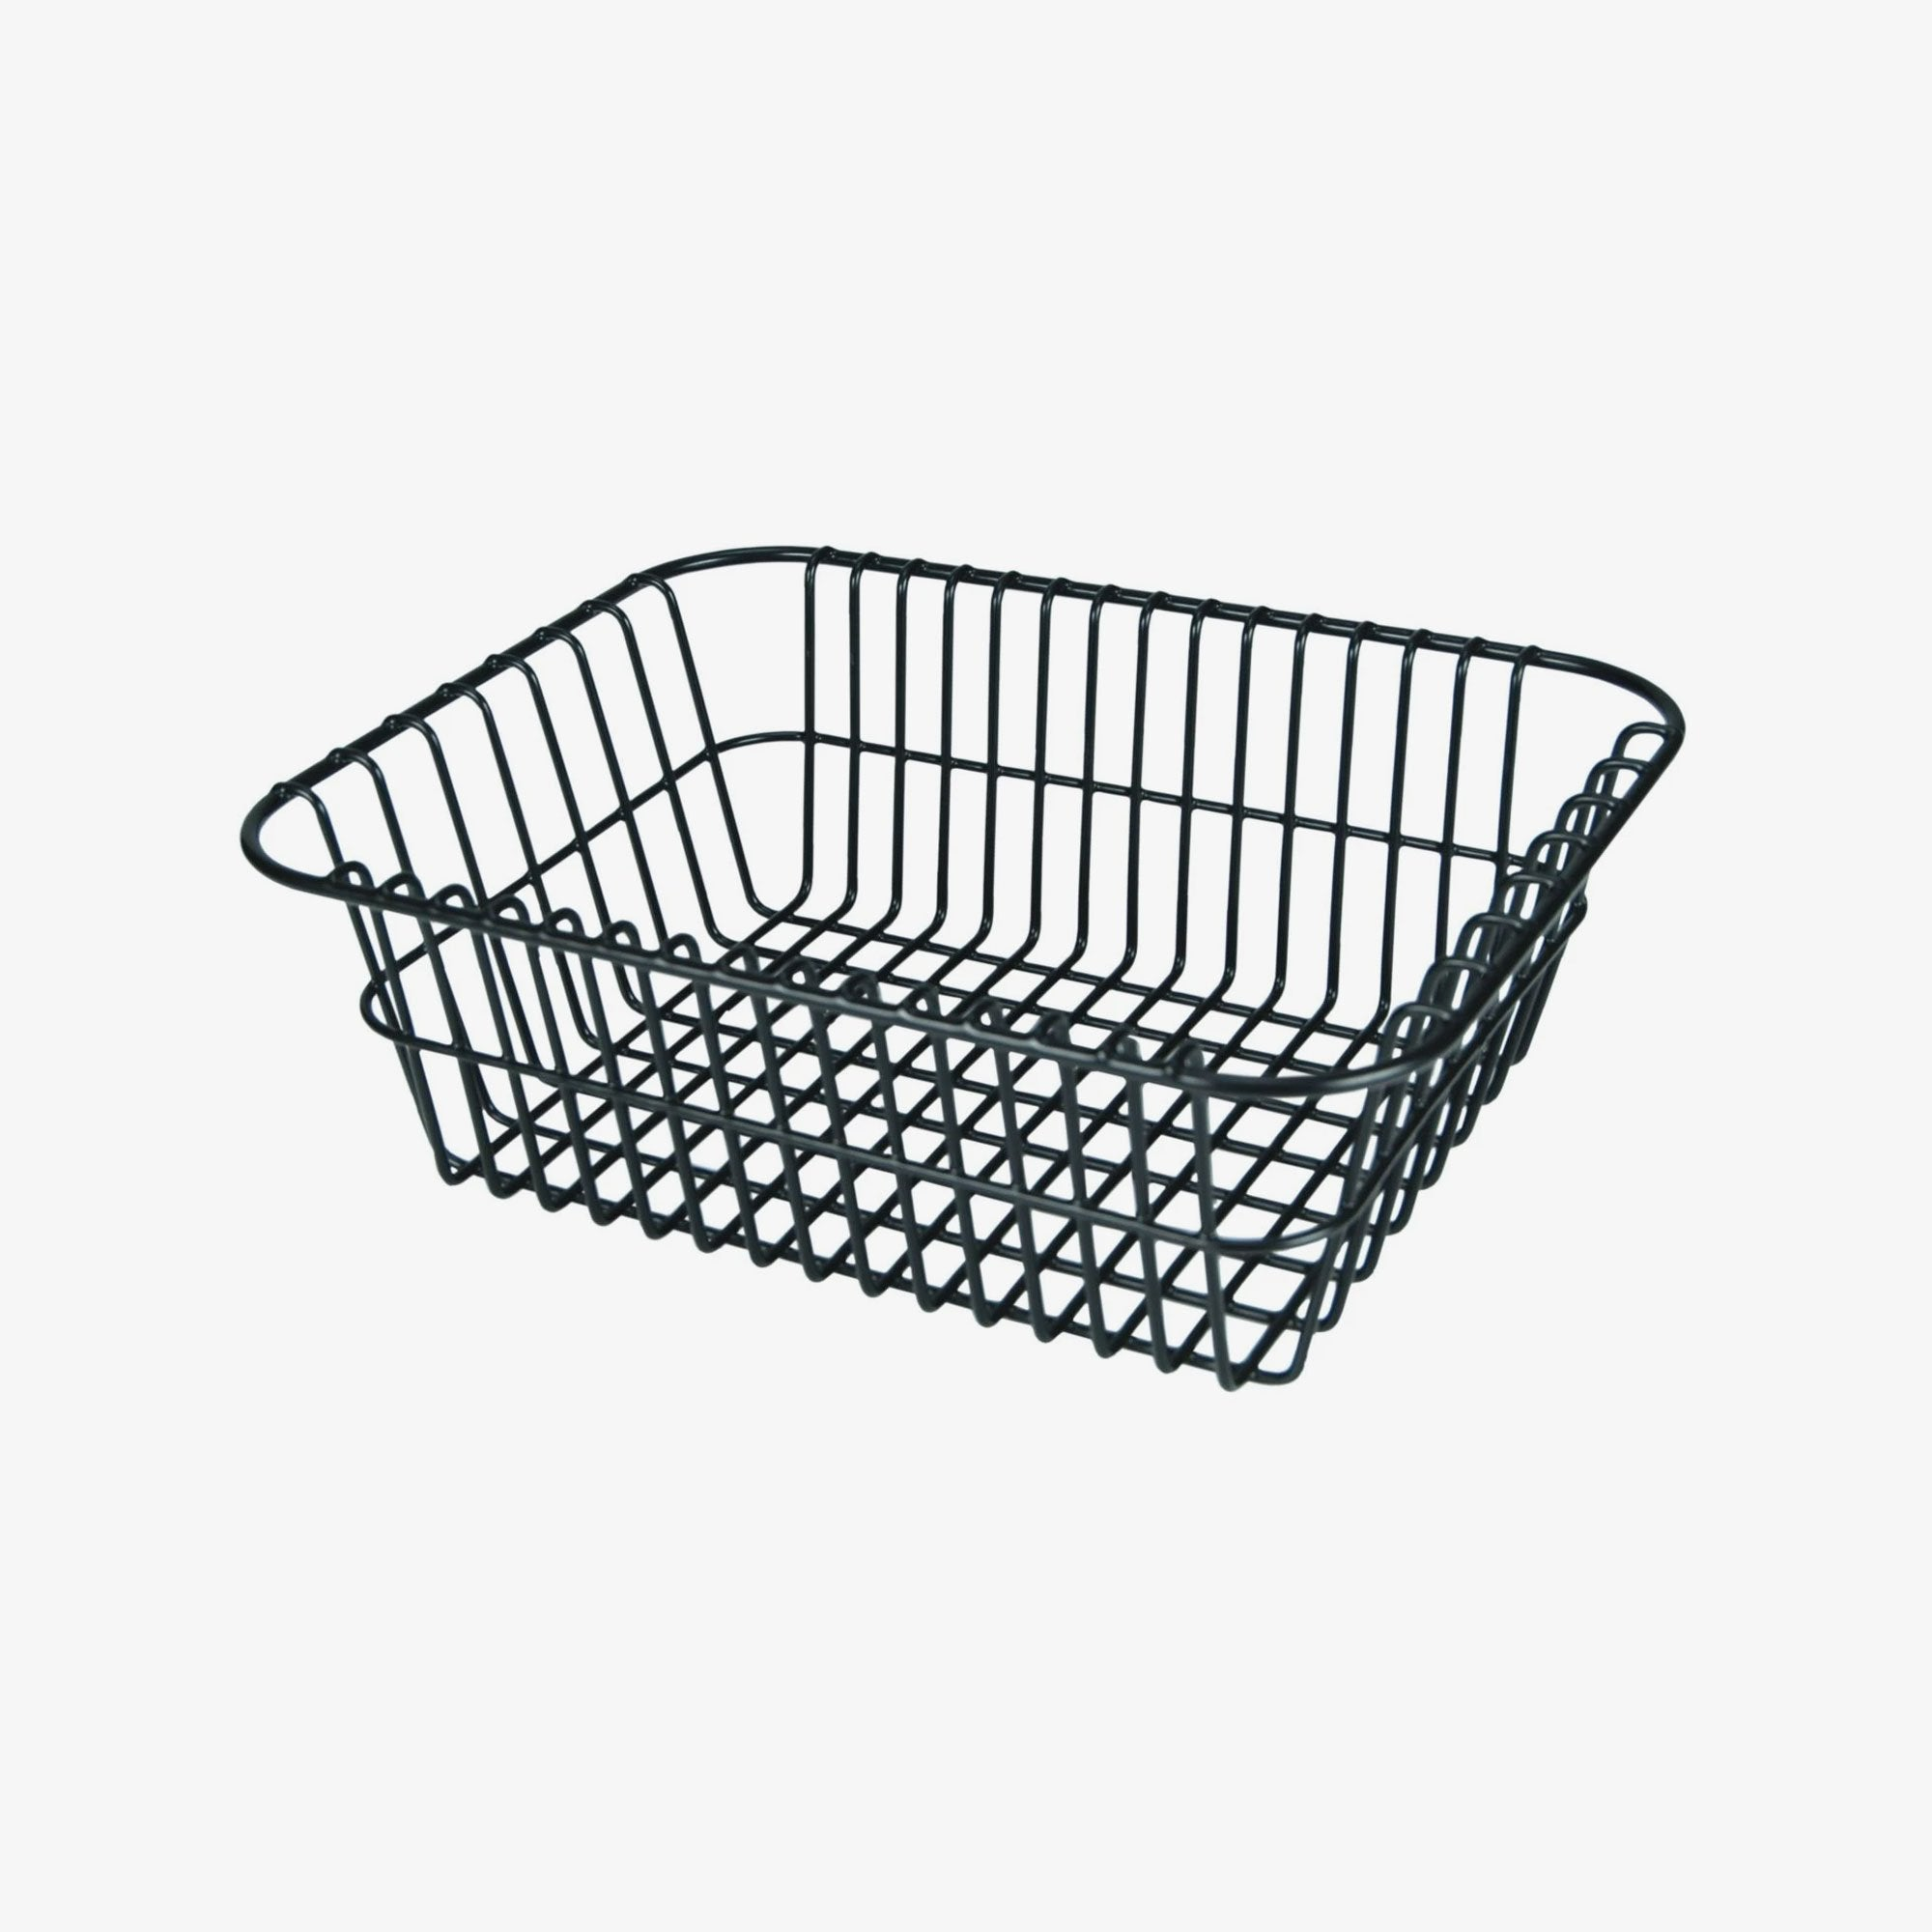 Large View | Wire Basket For 72-94 Qt Non-Rotomold Coolers in Black at Igloo Accessories